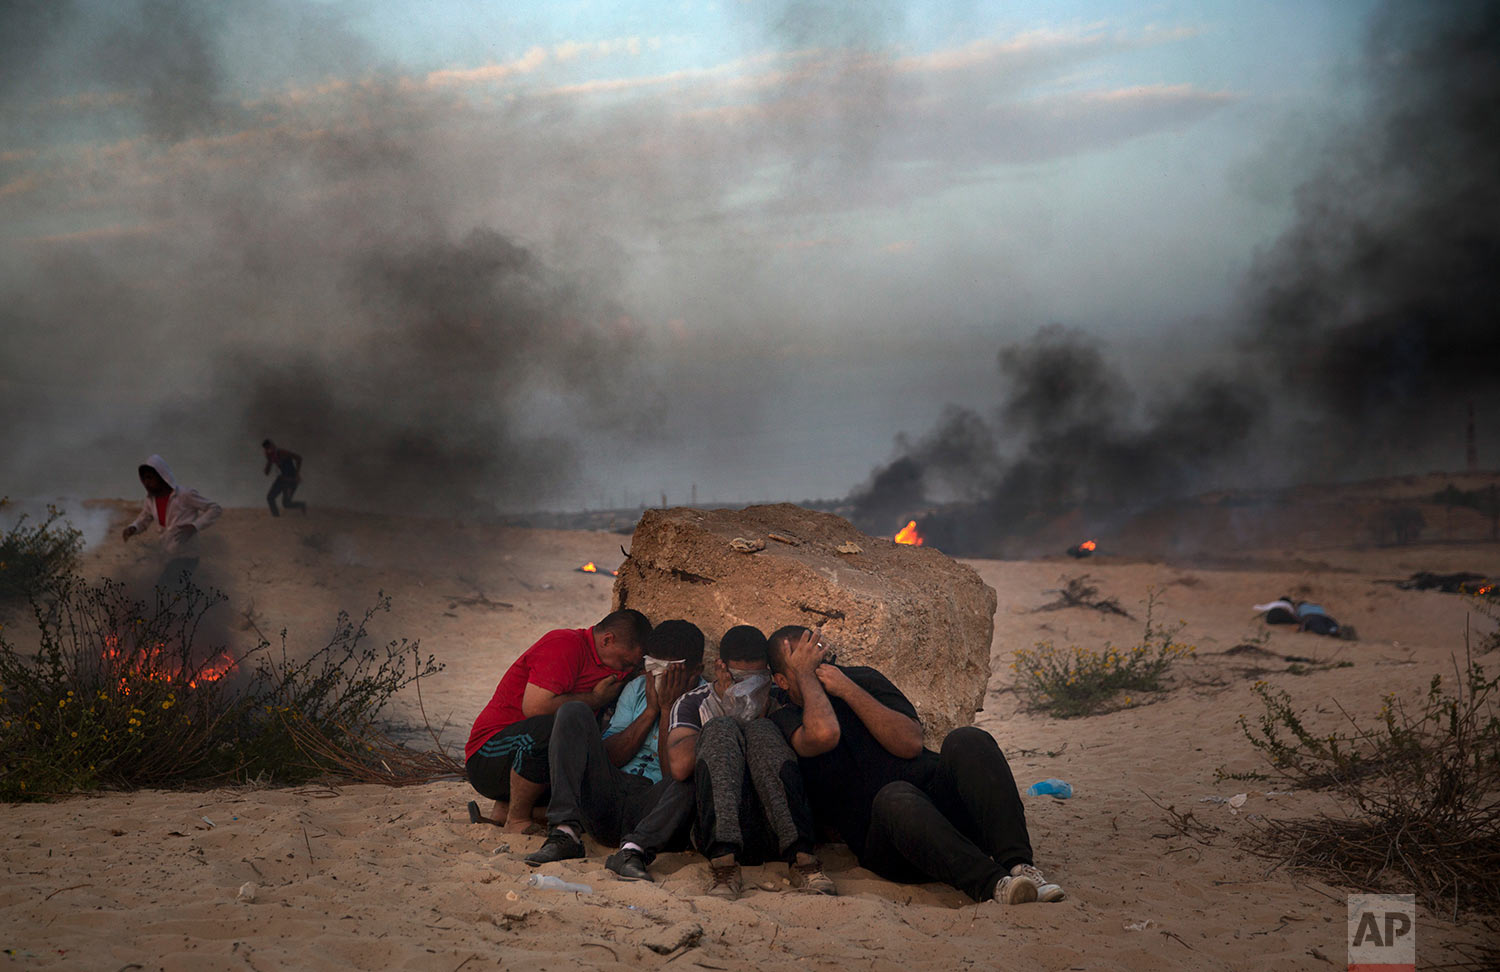 Palestinian protesters cover their faces from teargas fires by Israeli troops during a protest on the beach at the border with Israel near Beit Lahiya, northern Gaza Strip, Oct. 22, 2018. (AP Photo/Khalil Hamra)